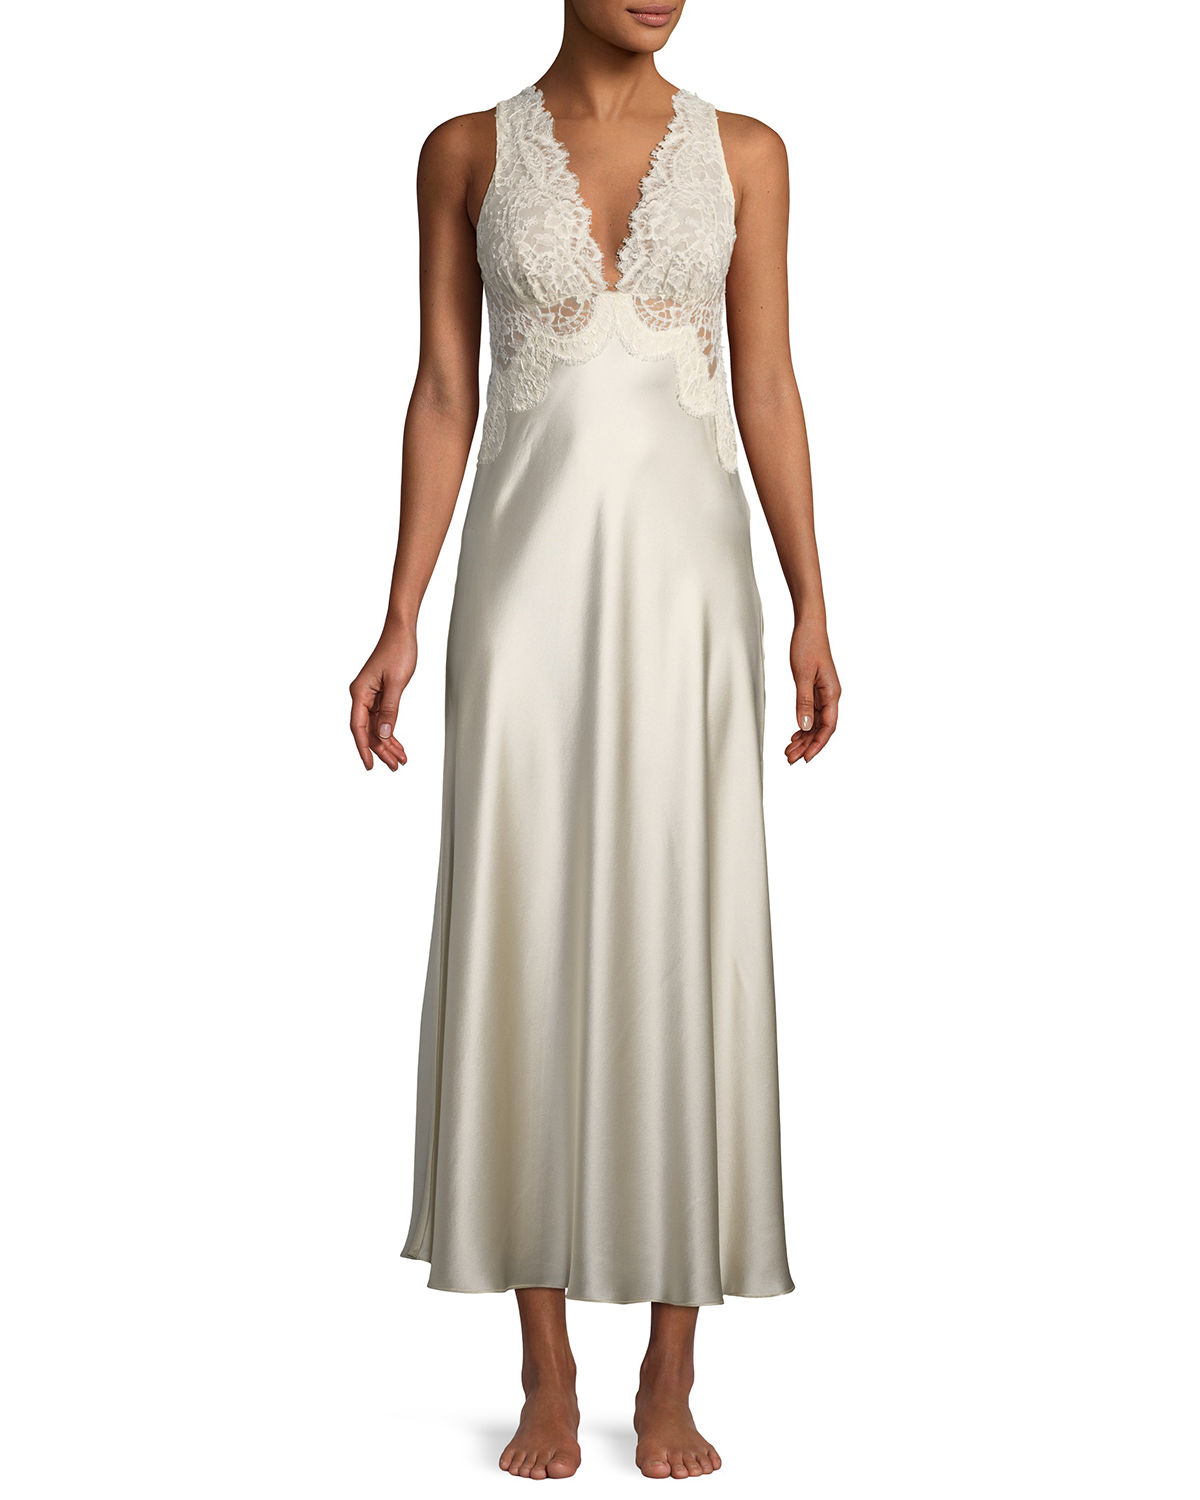 Christine Designs Beloved Lace-Trim Long Nightgown | Neiman Marcus